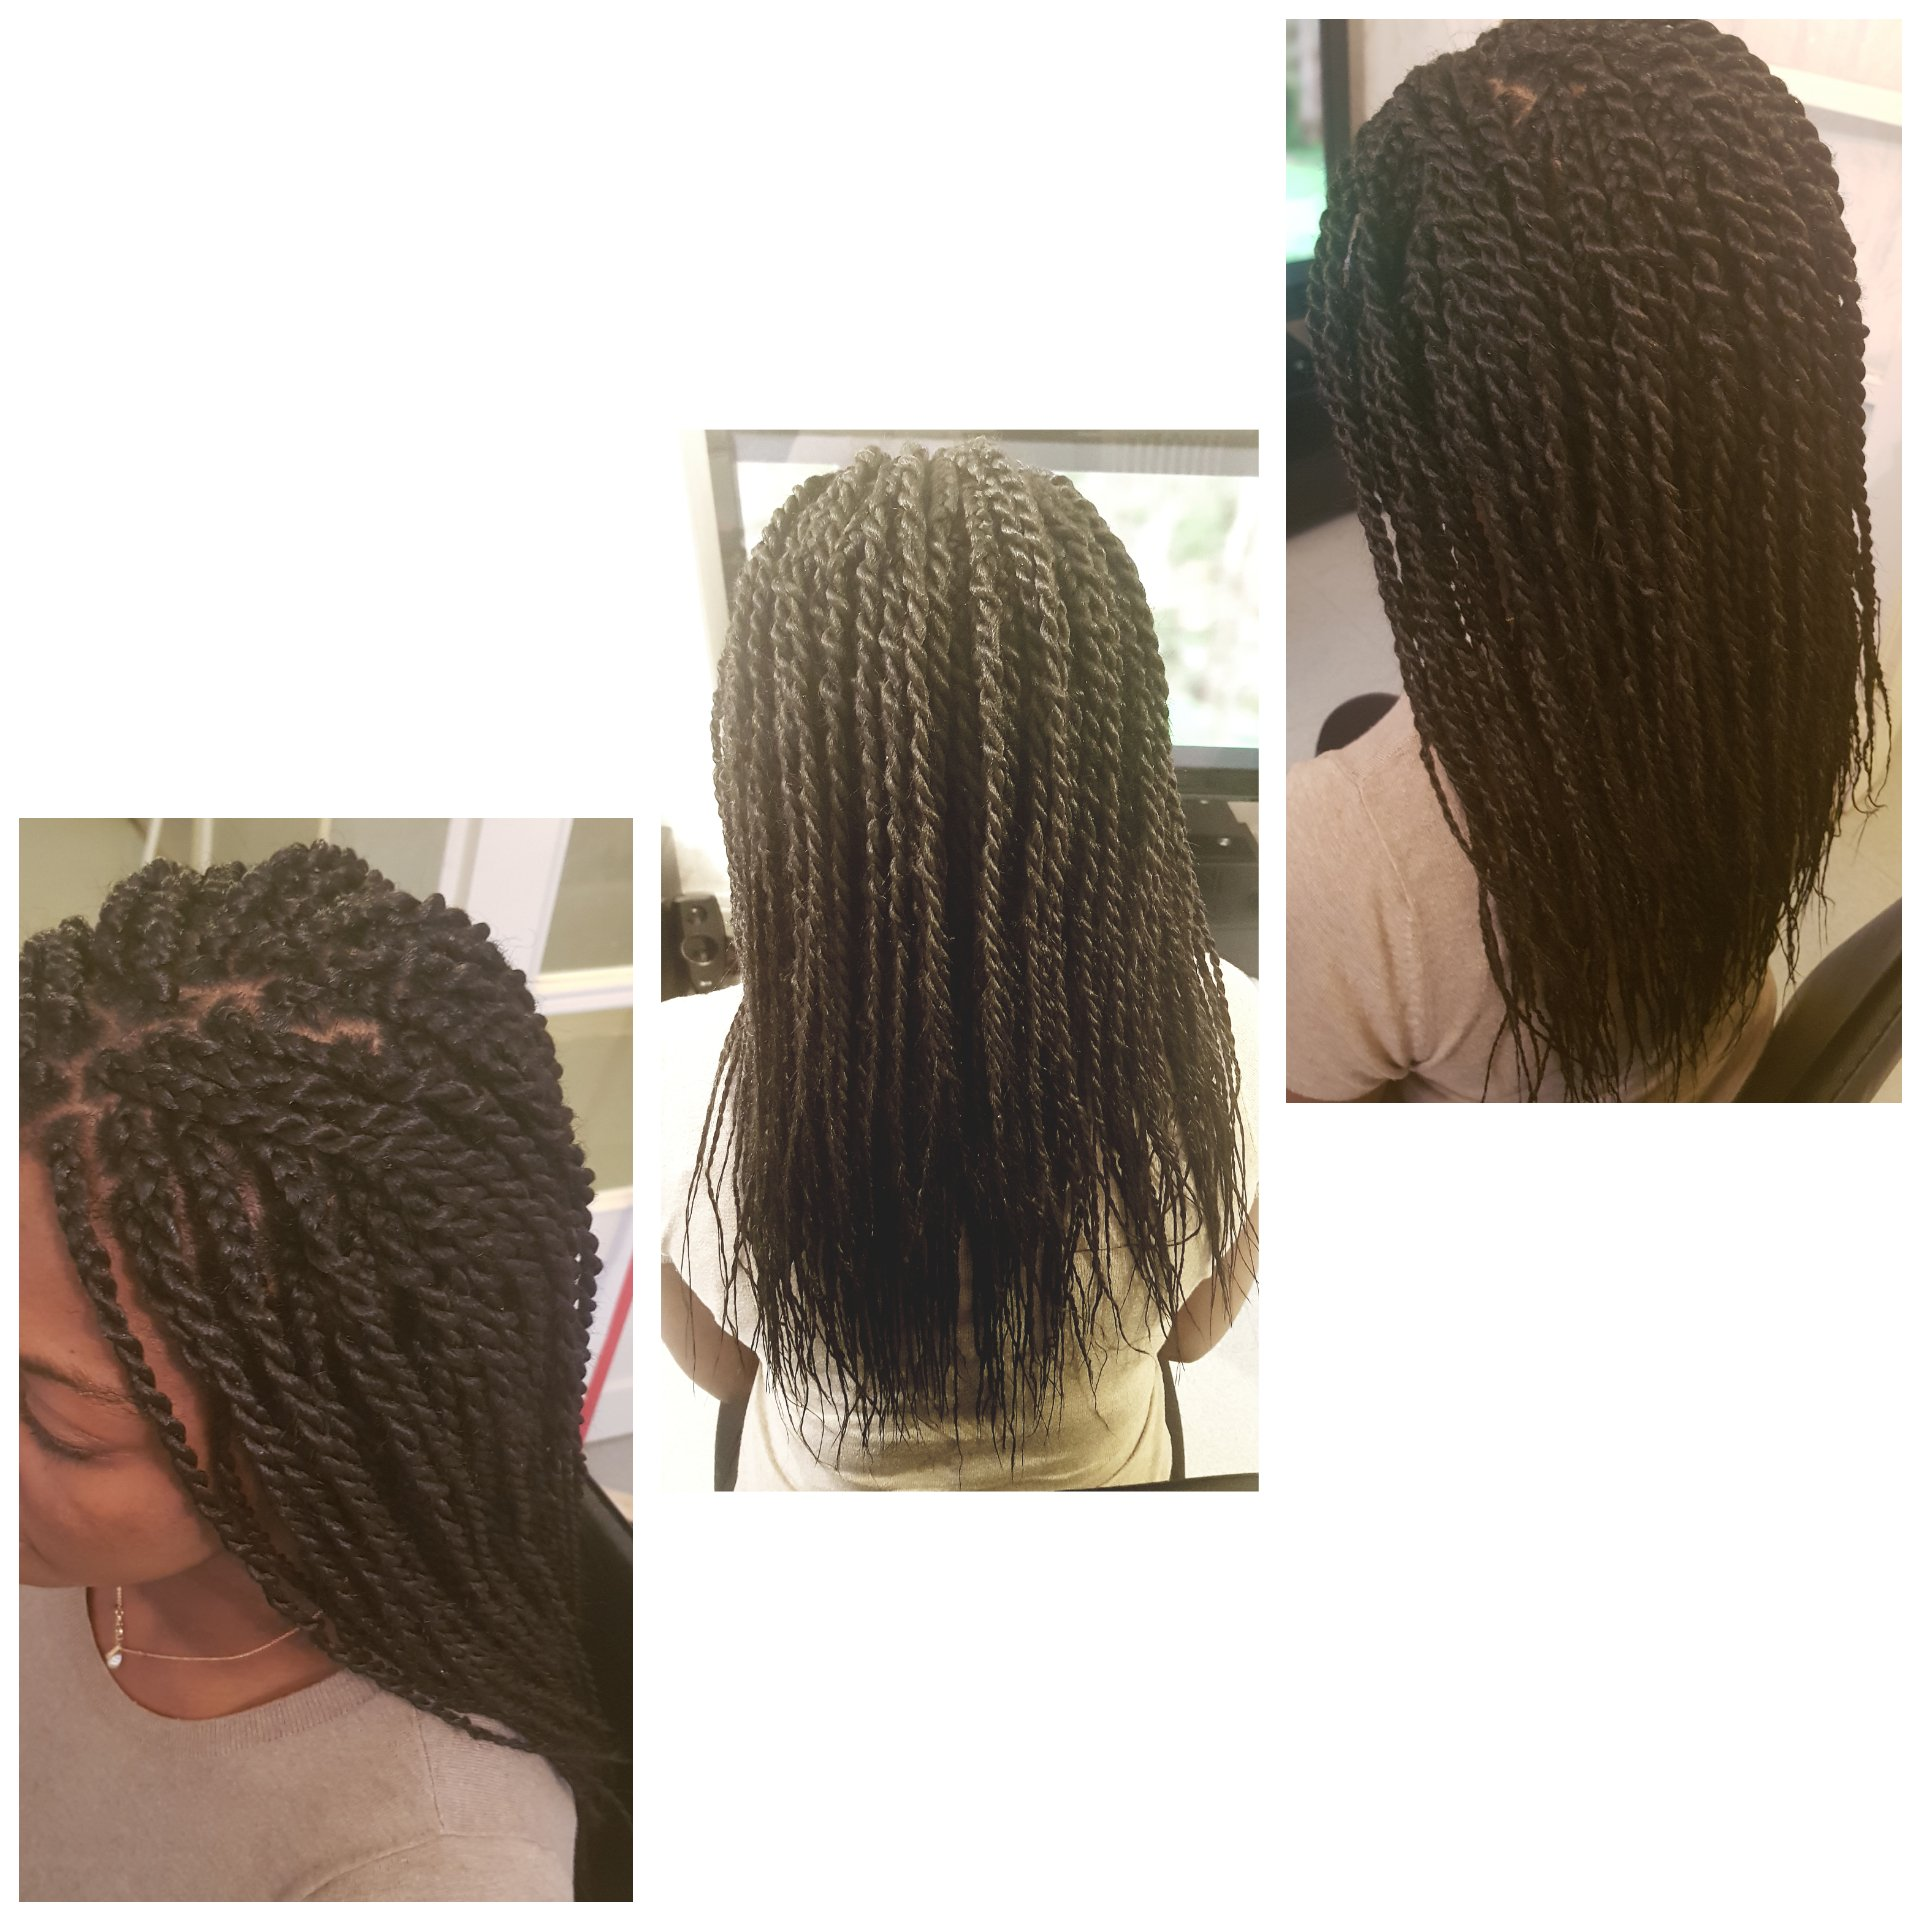 salon de coiffure afro tresse tresses box braids crochet braids vanilles tissages paris 75 77 78 91 92 93 94 95 SSEXADIF